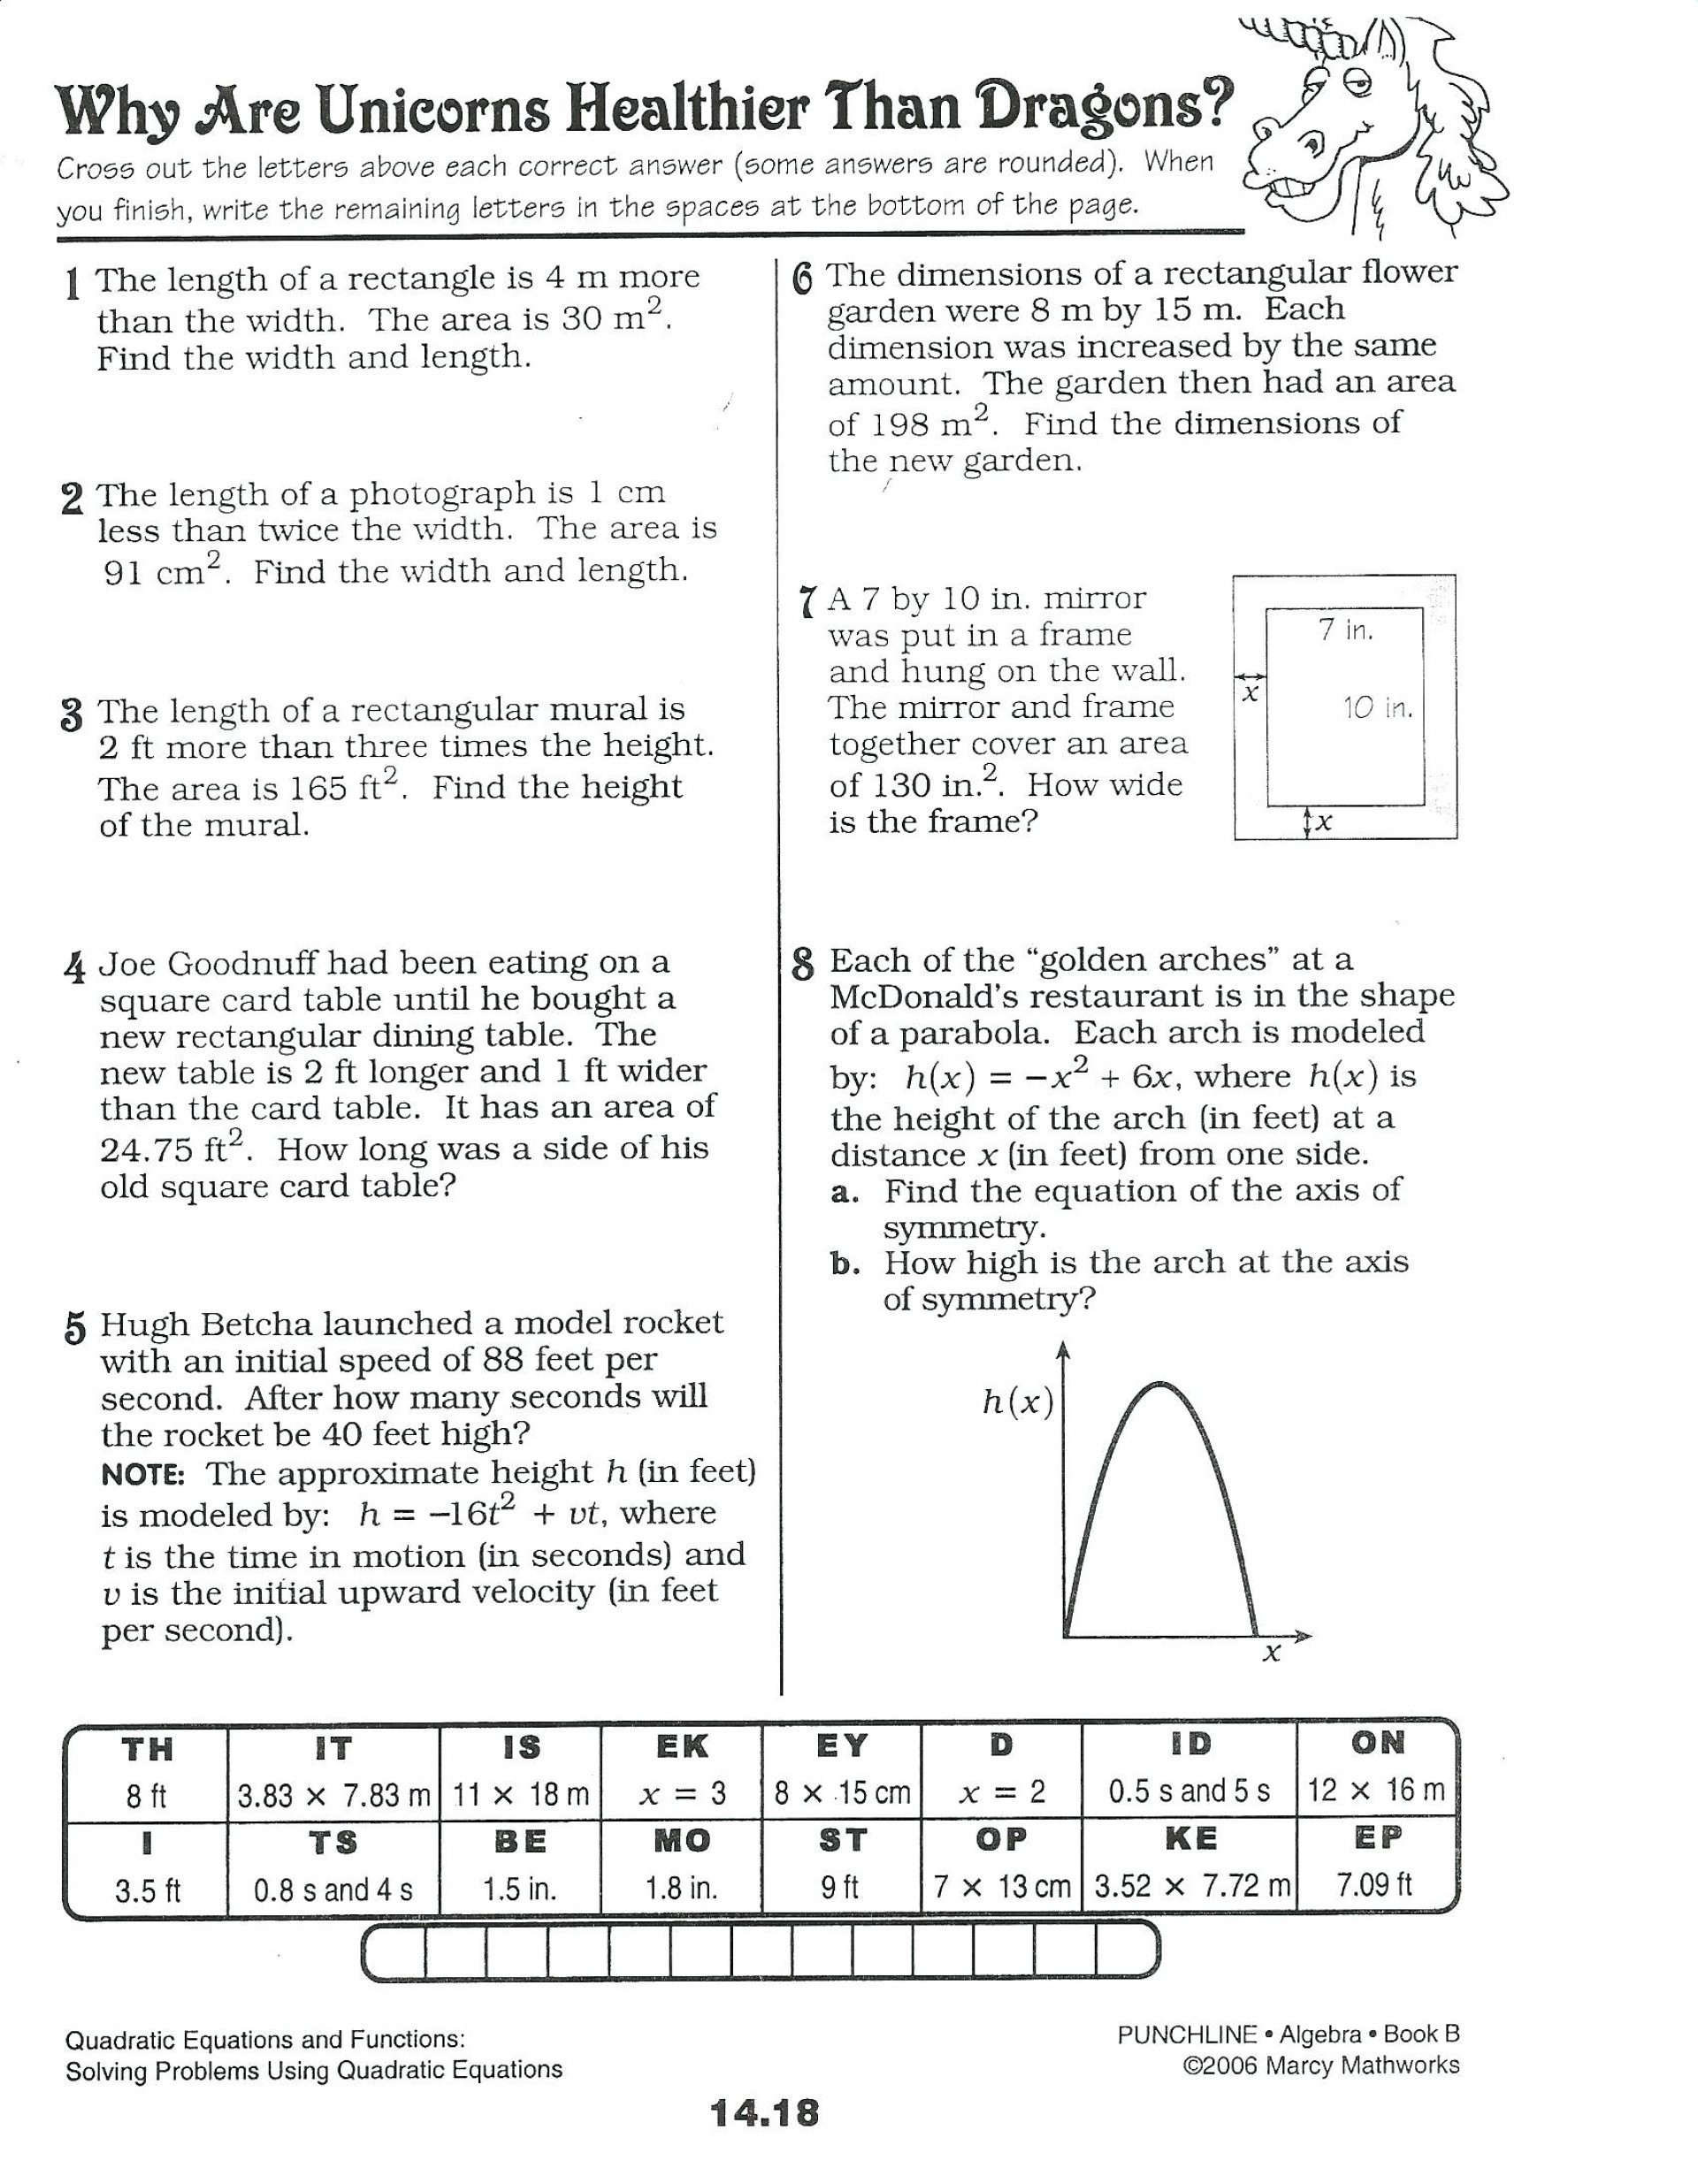 Linear Function Word Problems Worksheet Exponential Functions Word Problems Worksheet